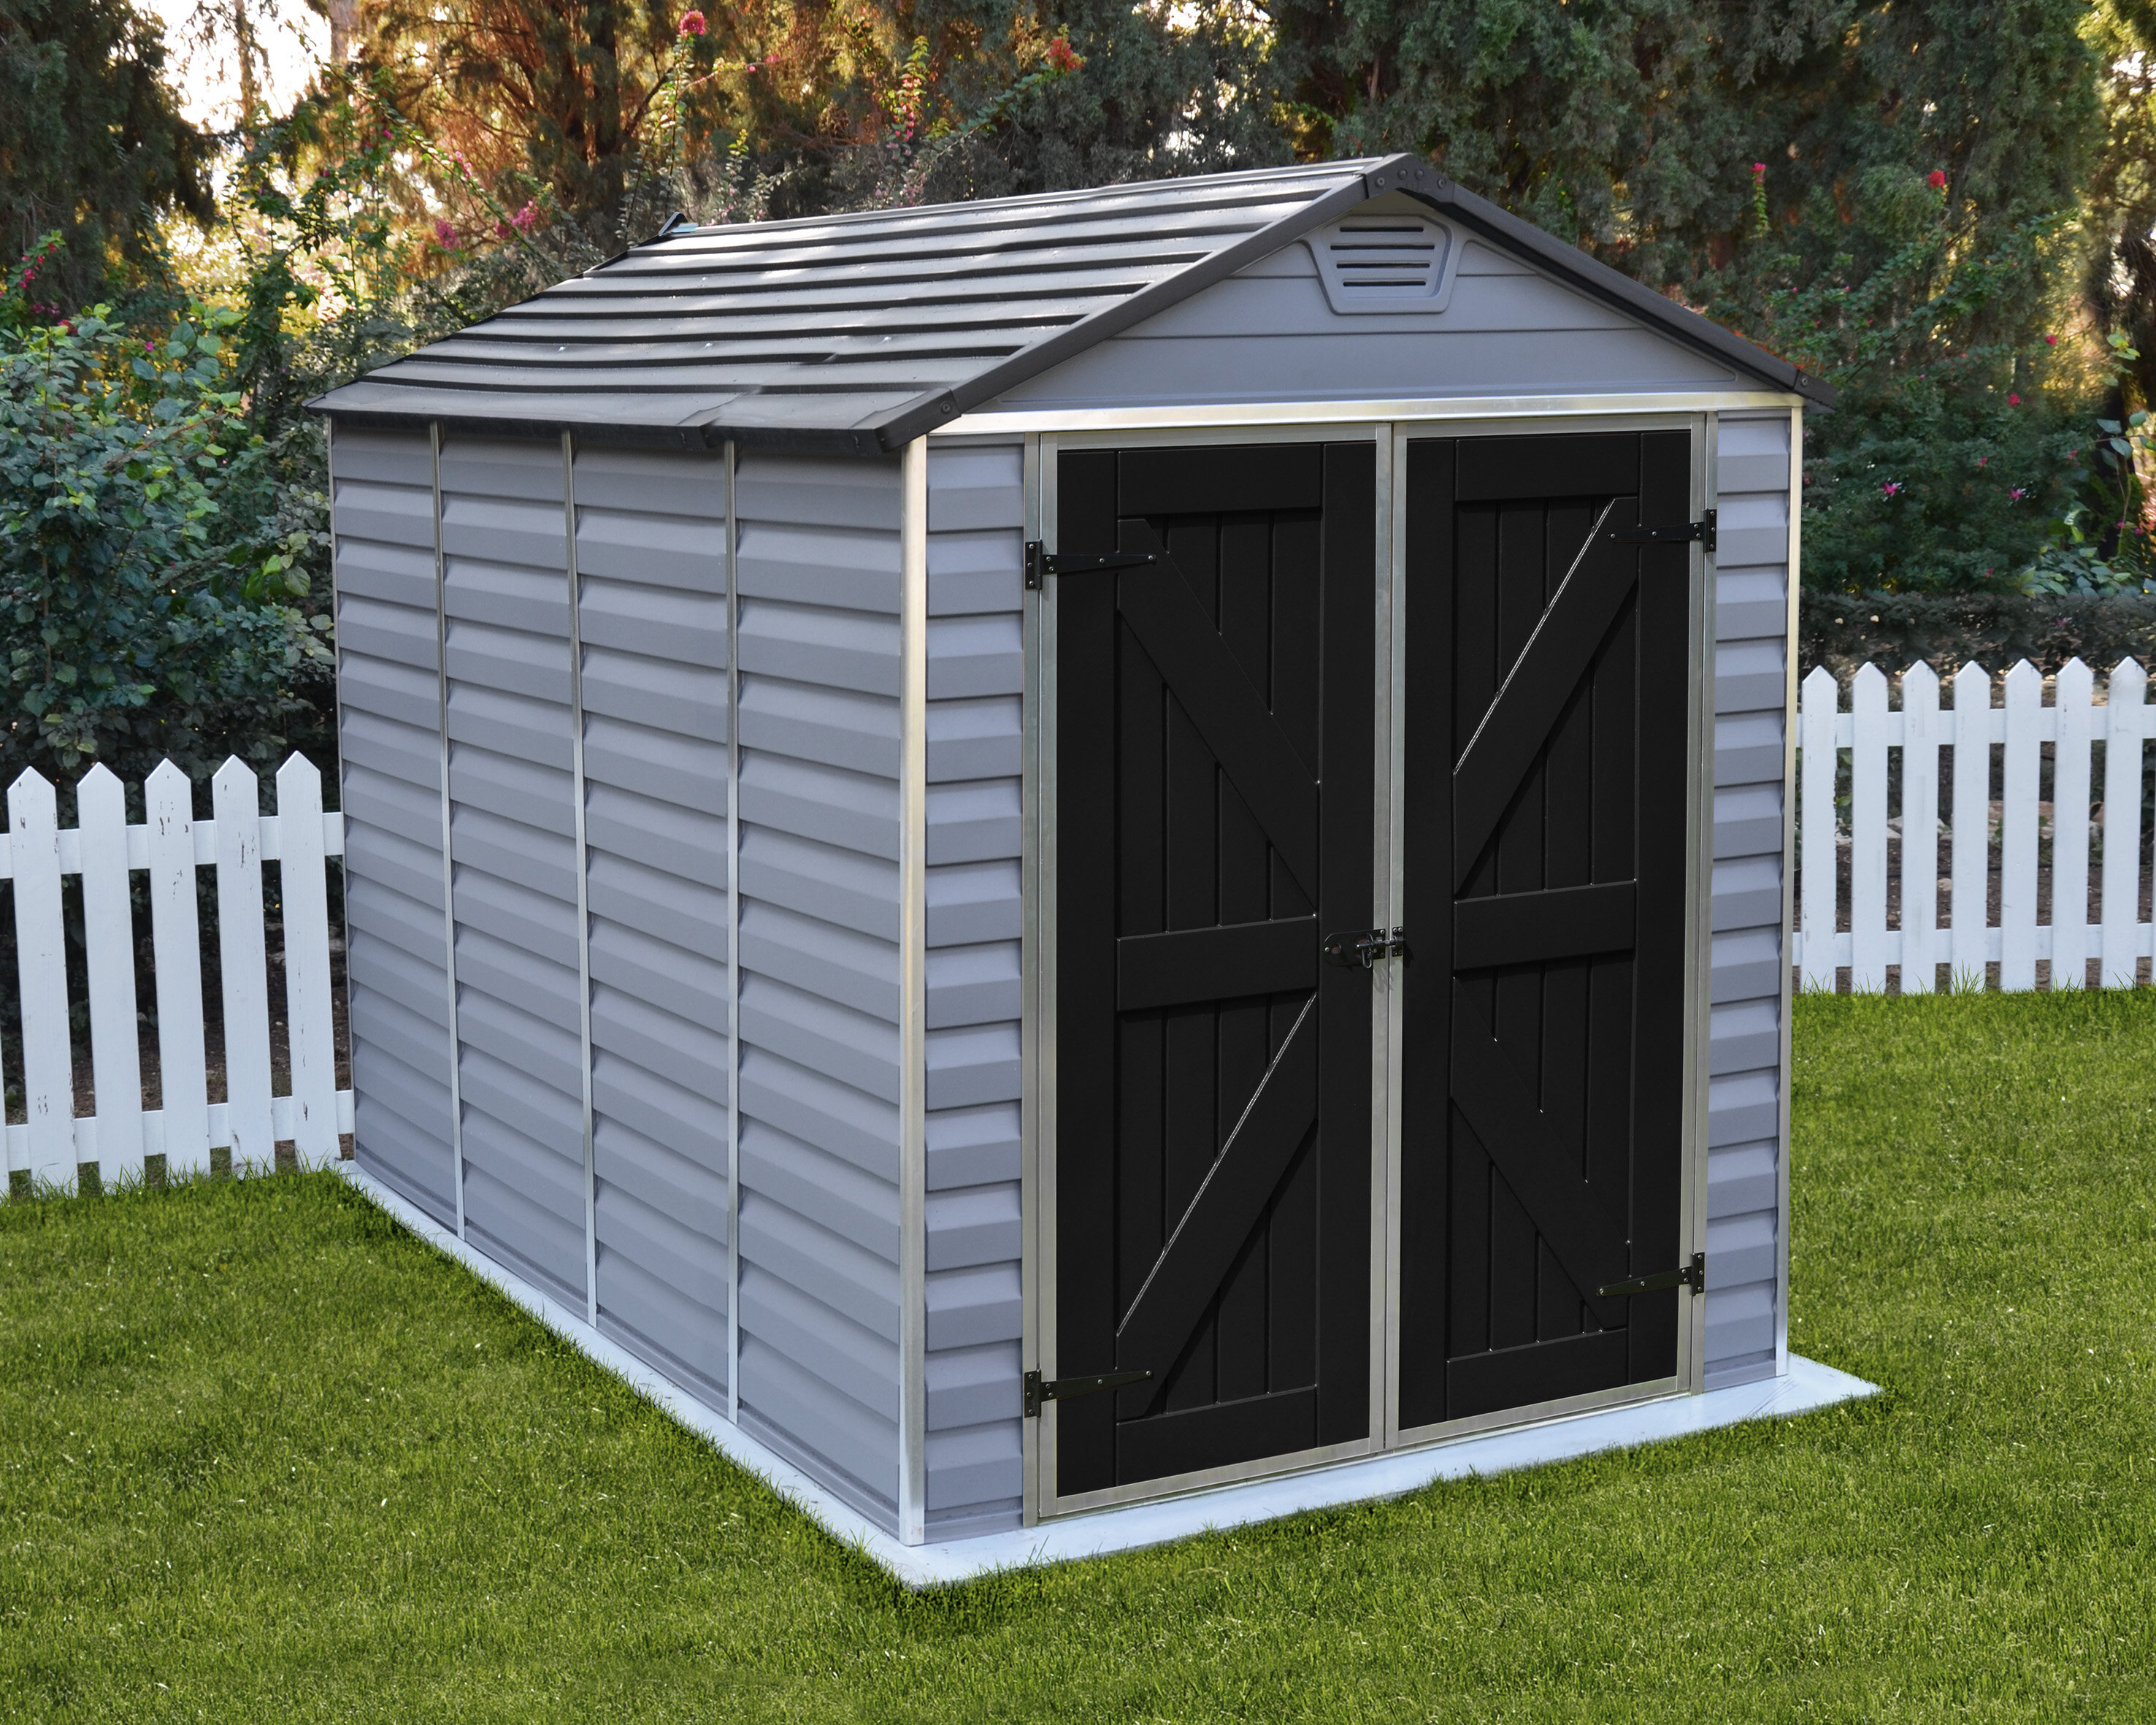 outdoor storage wayfair x reviews pdx shed plastic d sheds w ft skylight palram